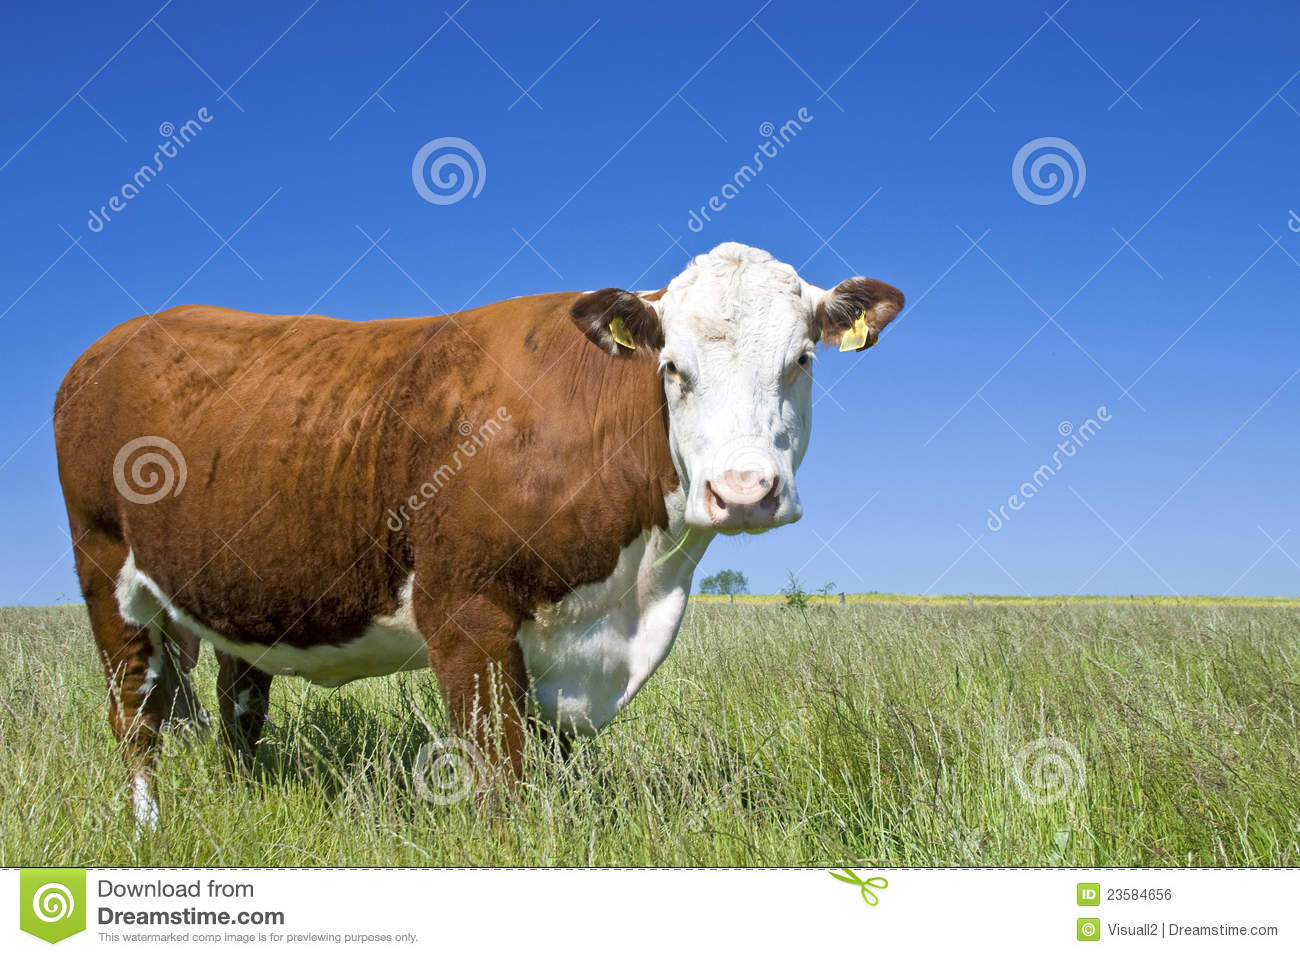 Cow Hereford, cow, cattle